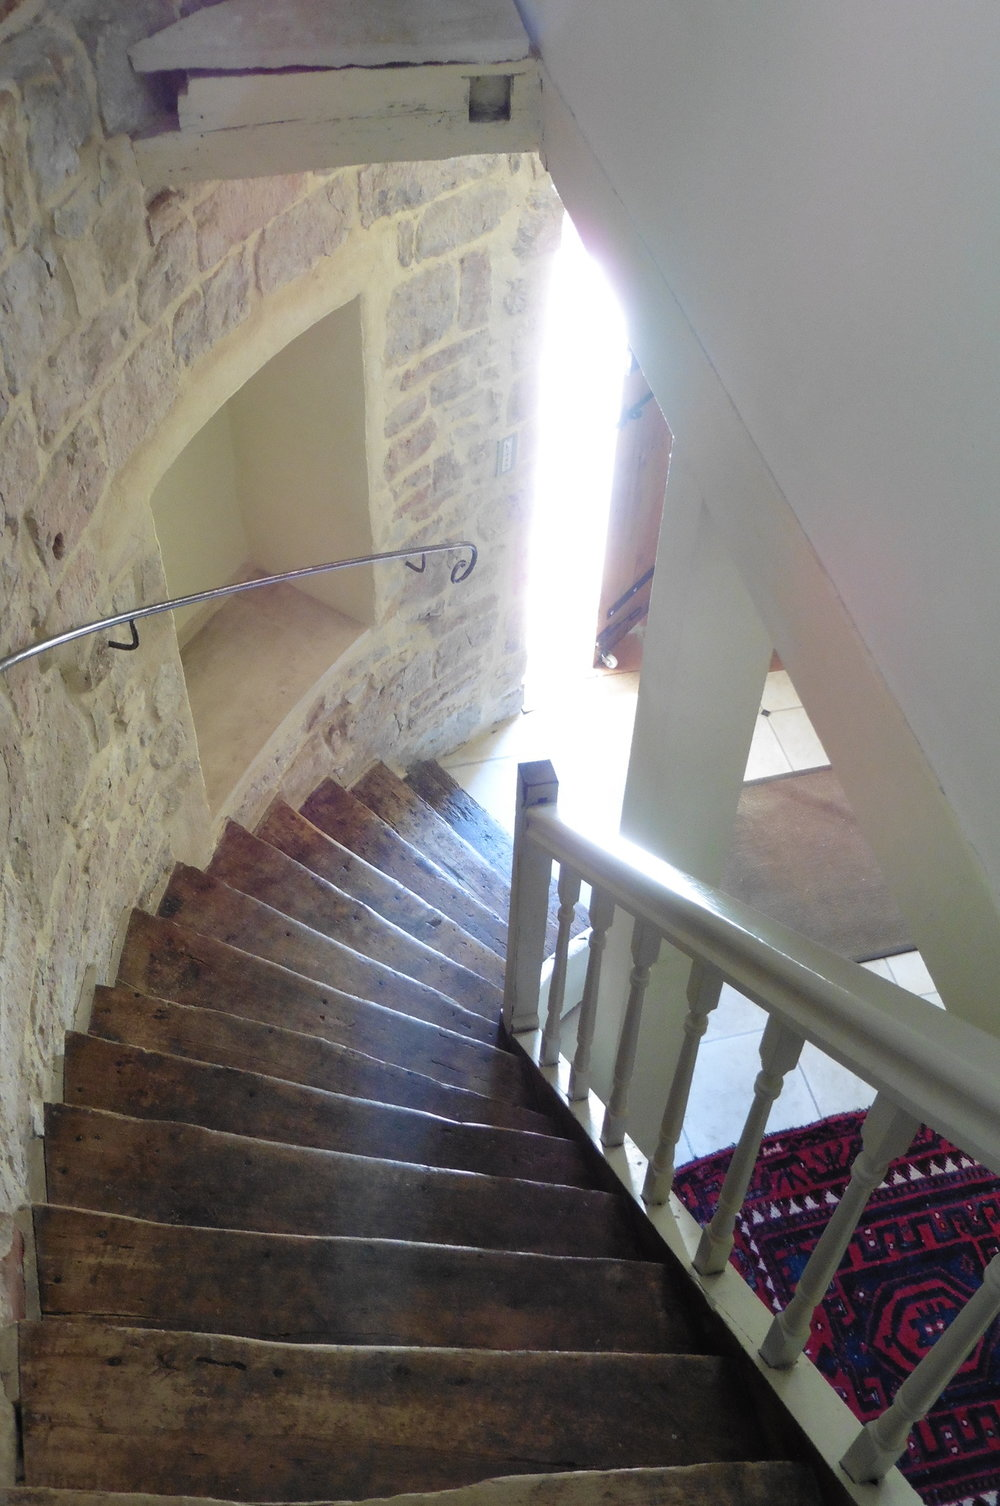 A view of the handrail from the top of the curving staircase.